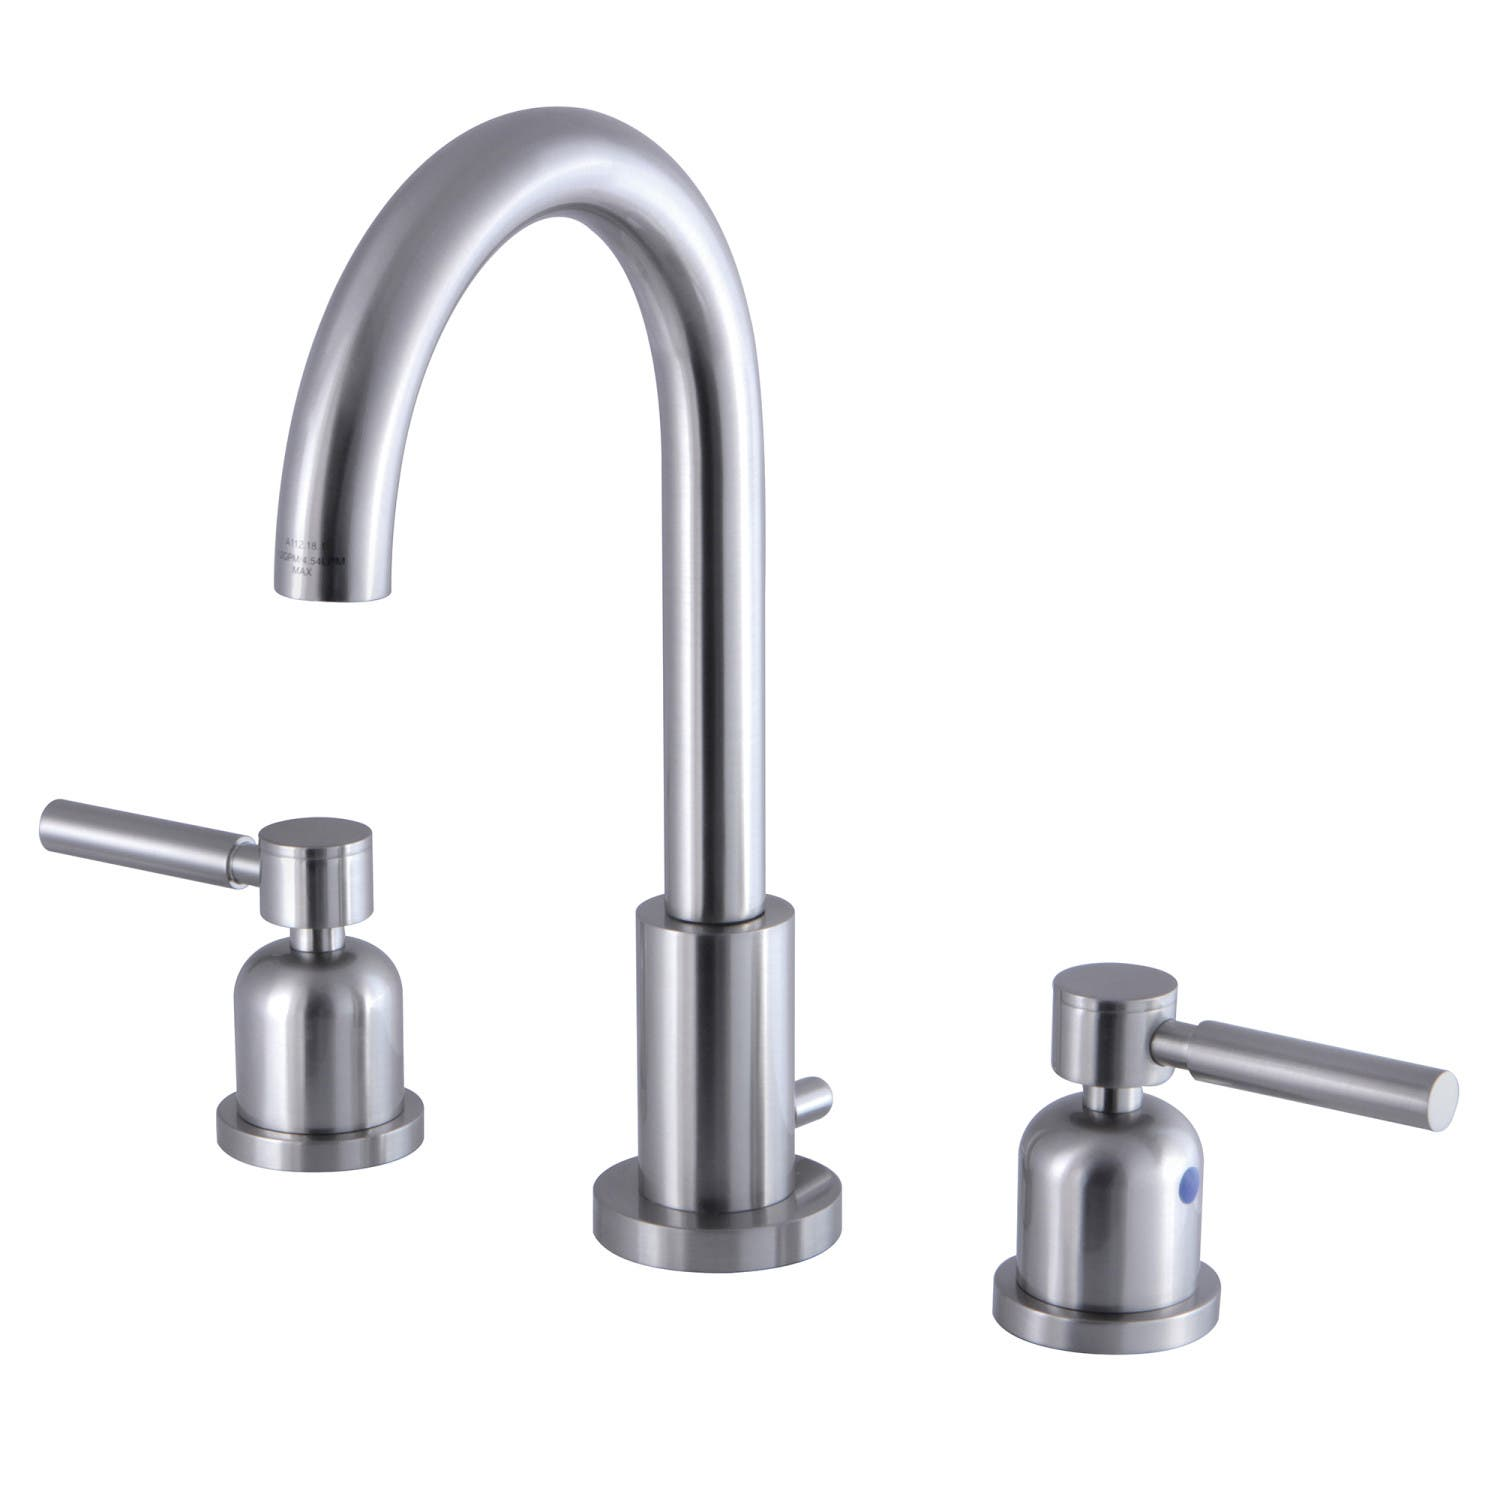 Delta 9913 DST Essa Pull Down Bar Prep Faucet with Magnetic Docking Spray Head Chrome Faucet Bar Single Handle$171.79Build.com(122)Free shippingFor most items:30 day return policy